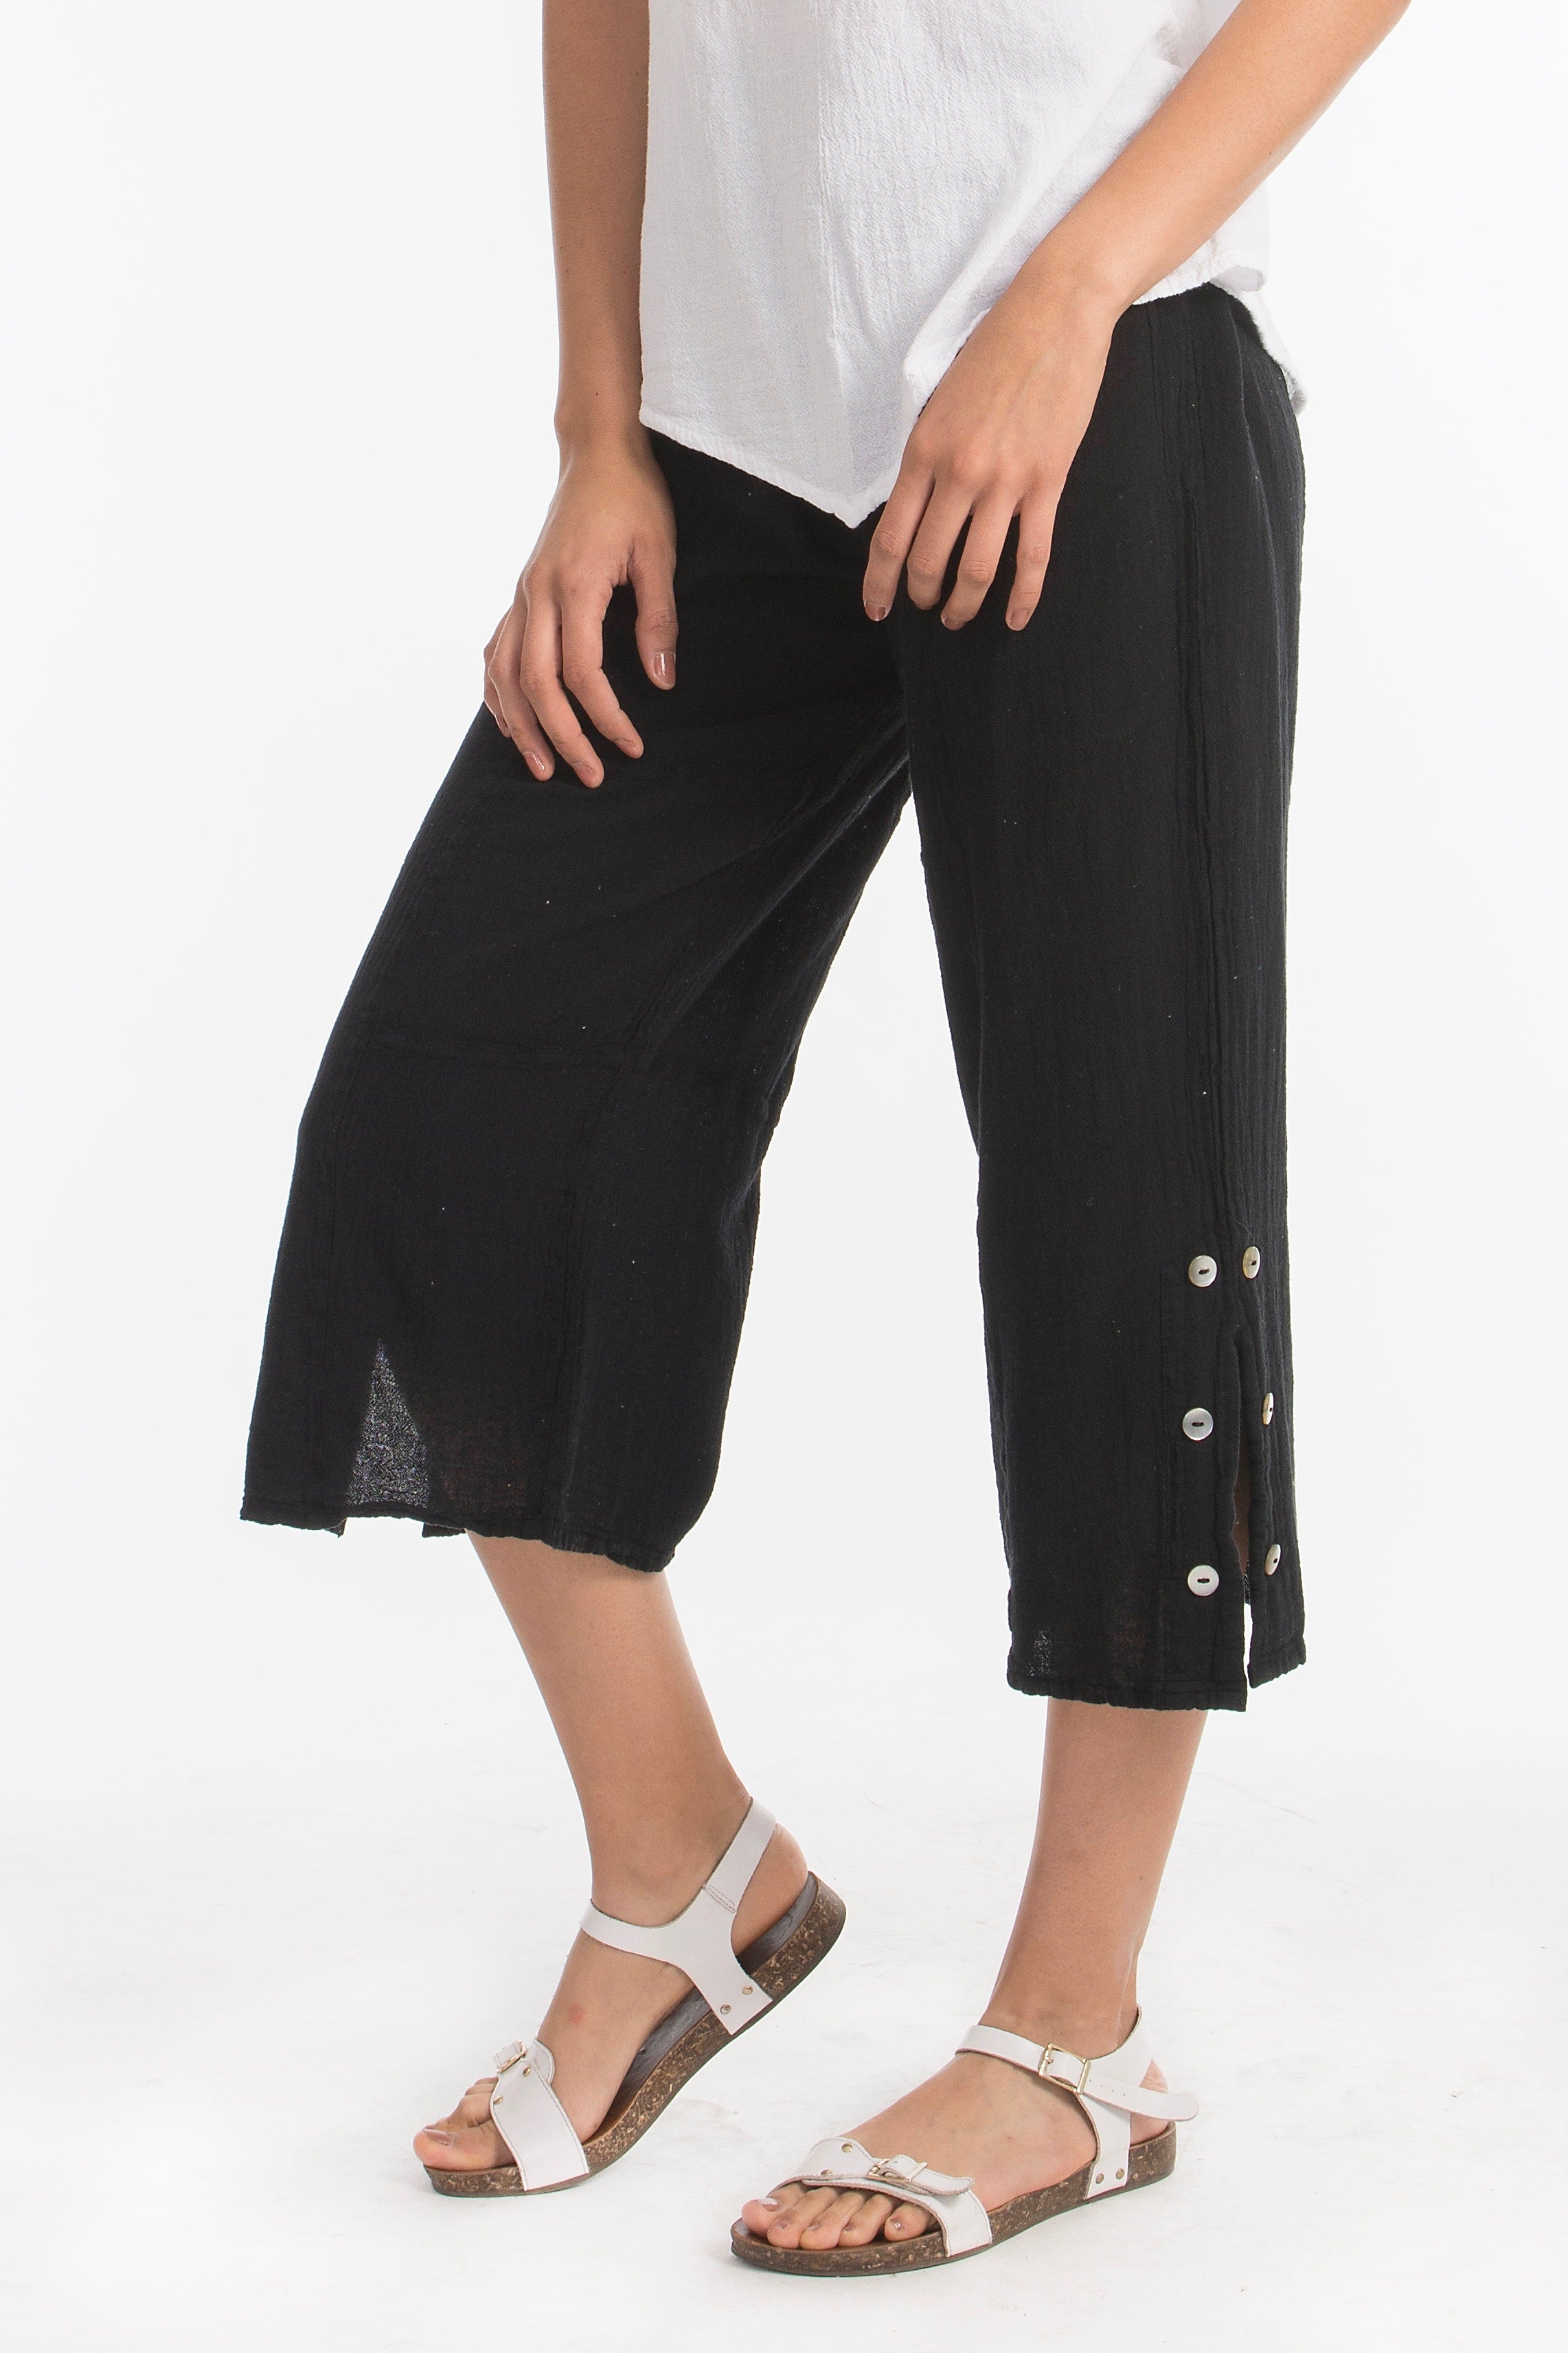 Frankie Pant -Always a Perfect Fit!